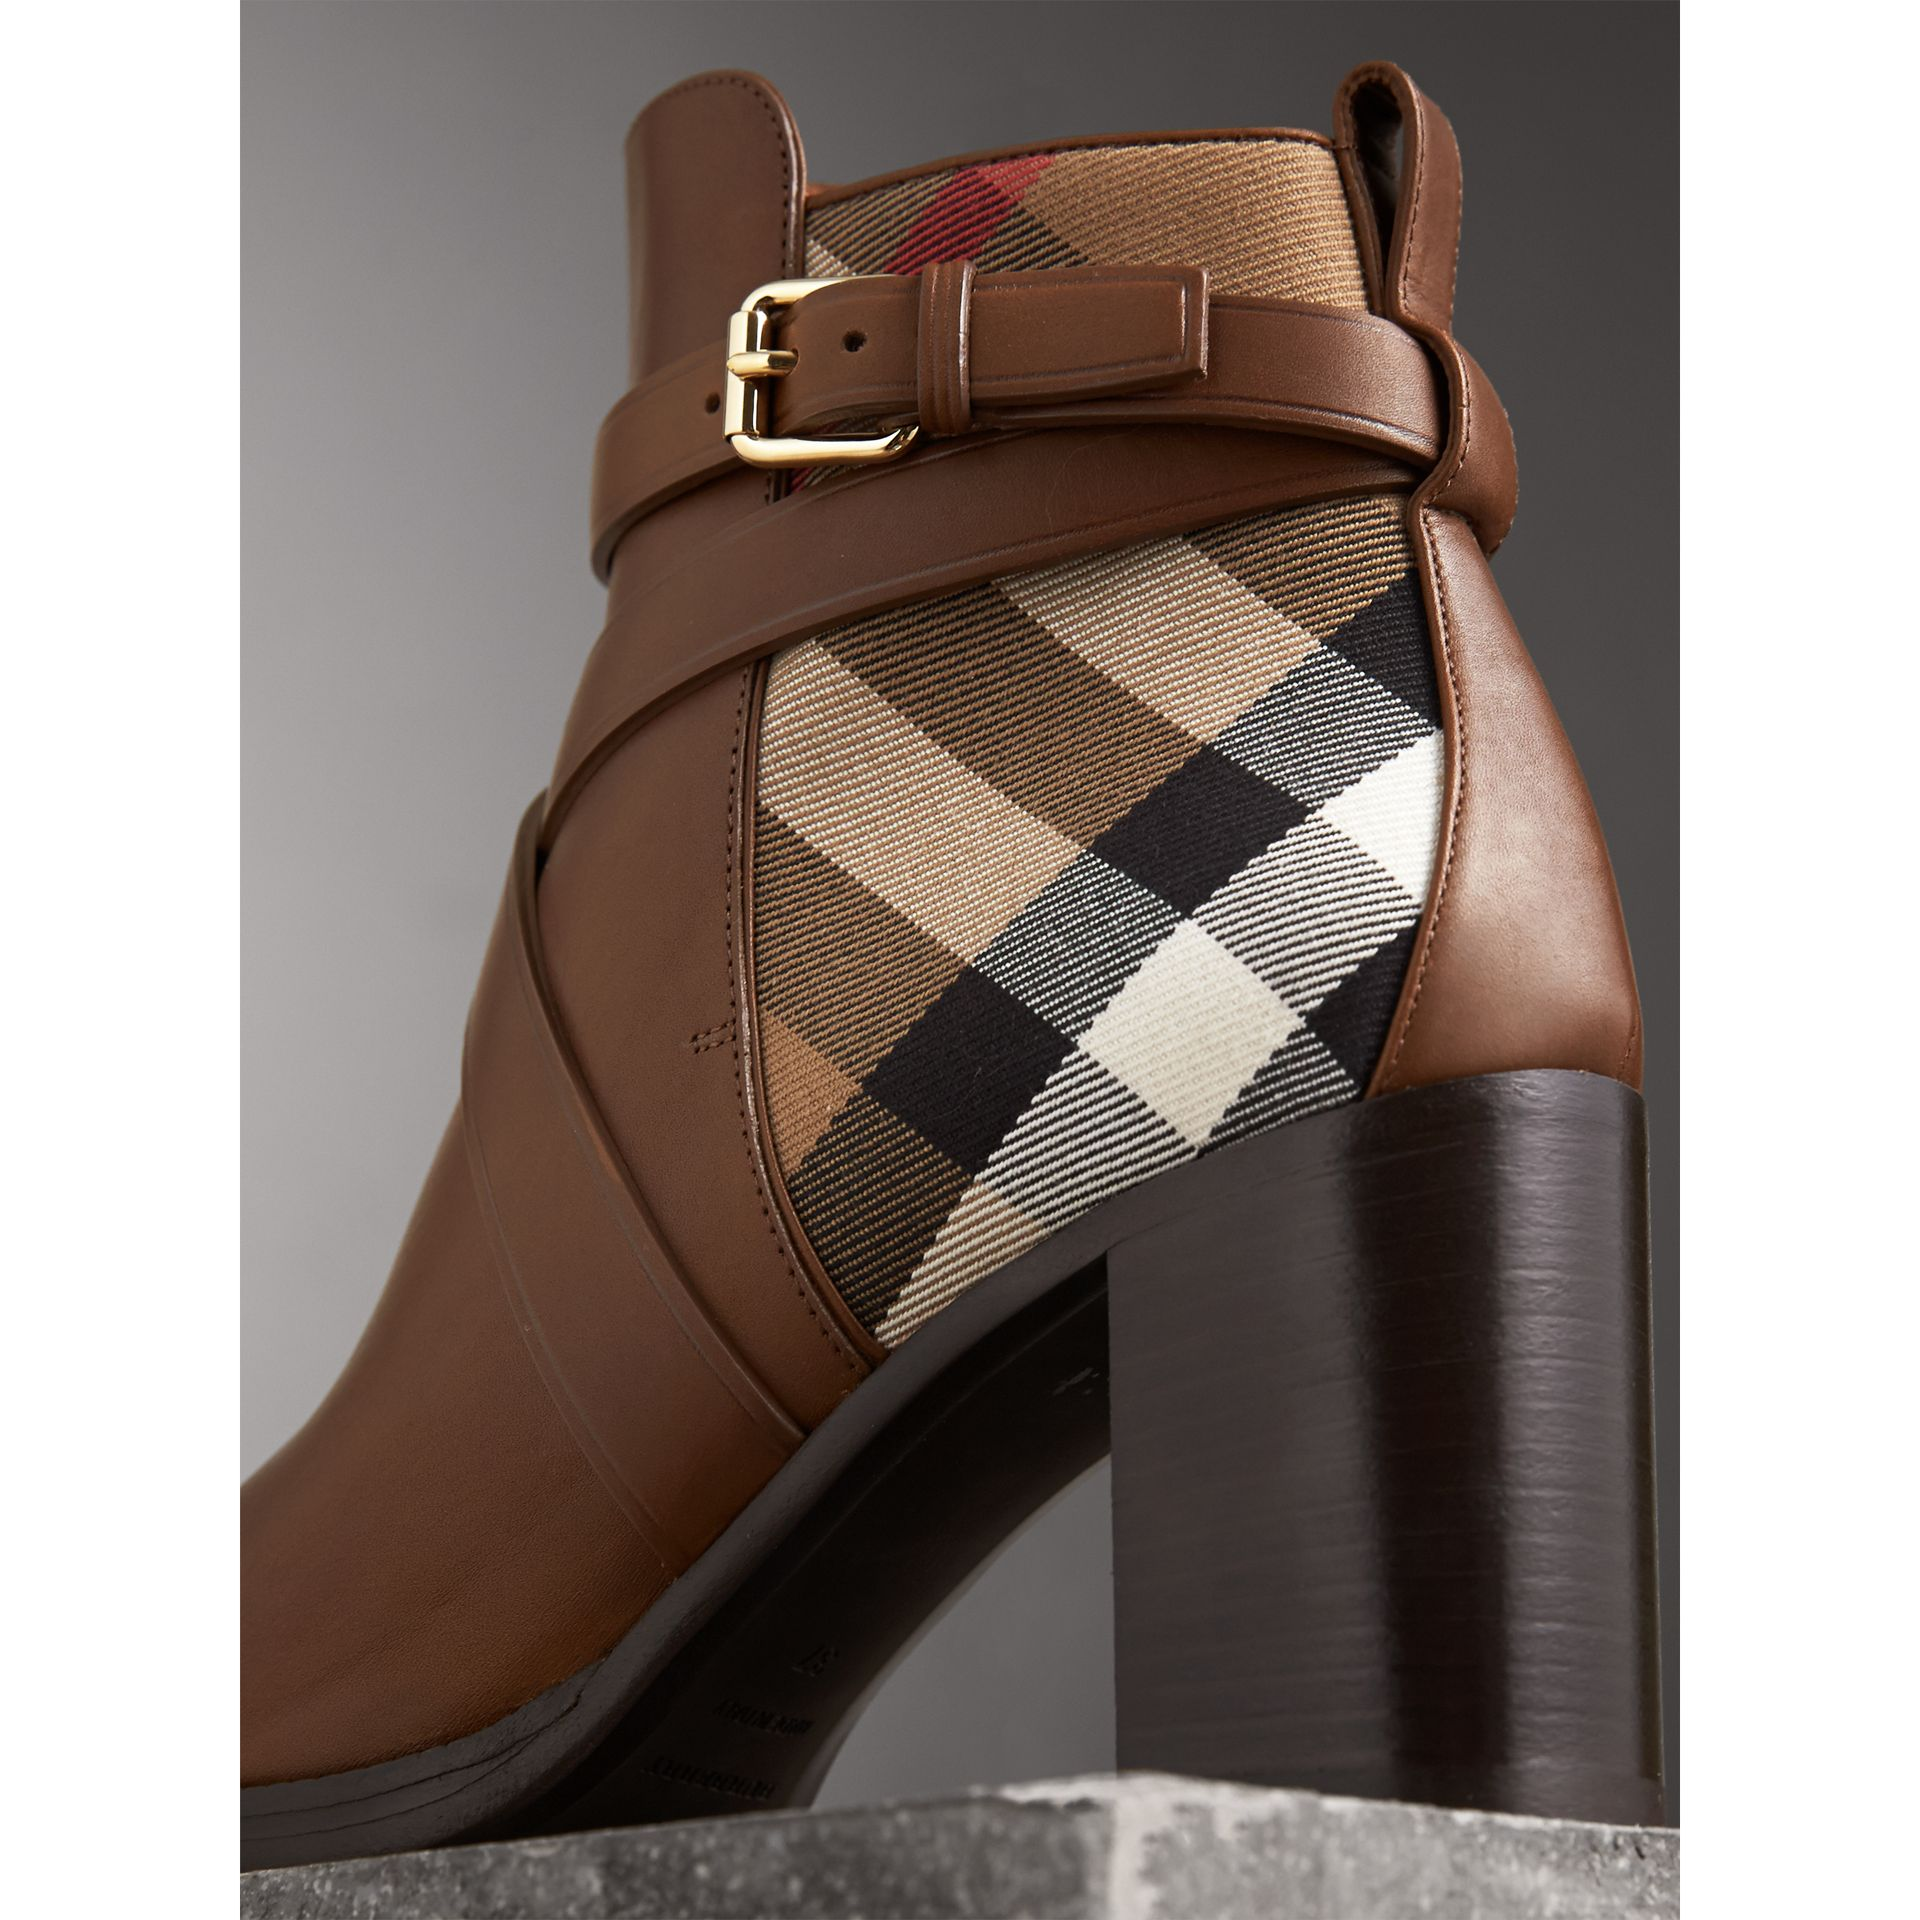 Bottines en cuir et coton House check (Camel Vif) - Femme | Burberry - photo de la galerie 1